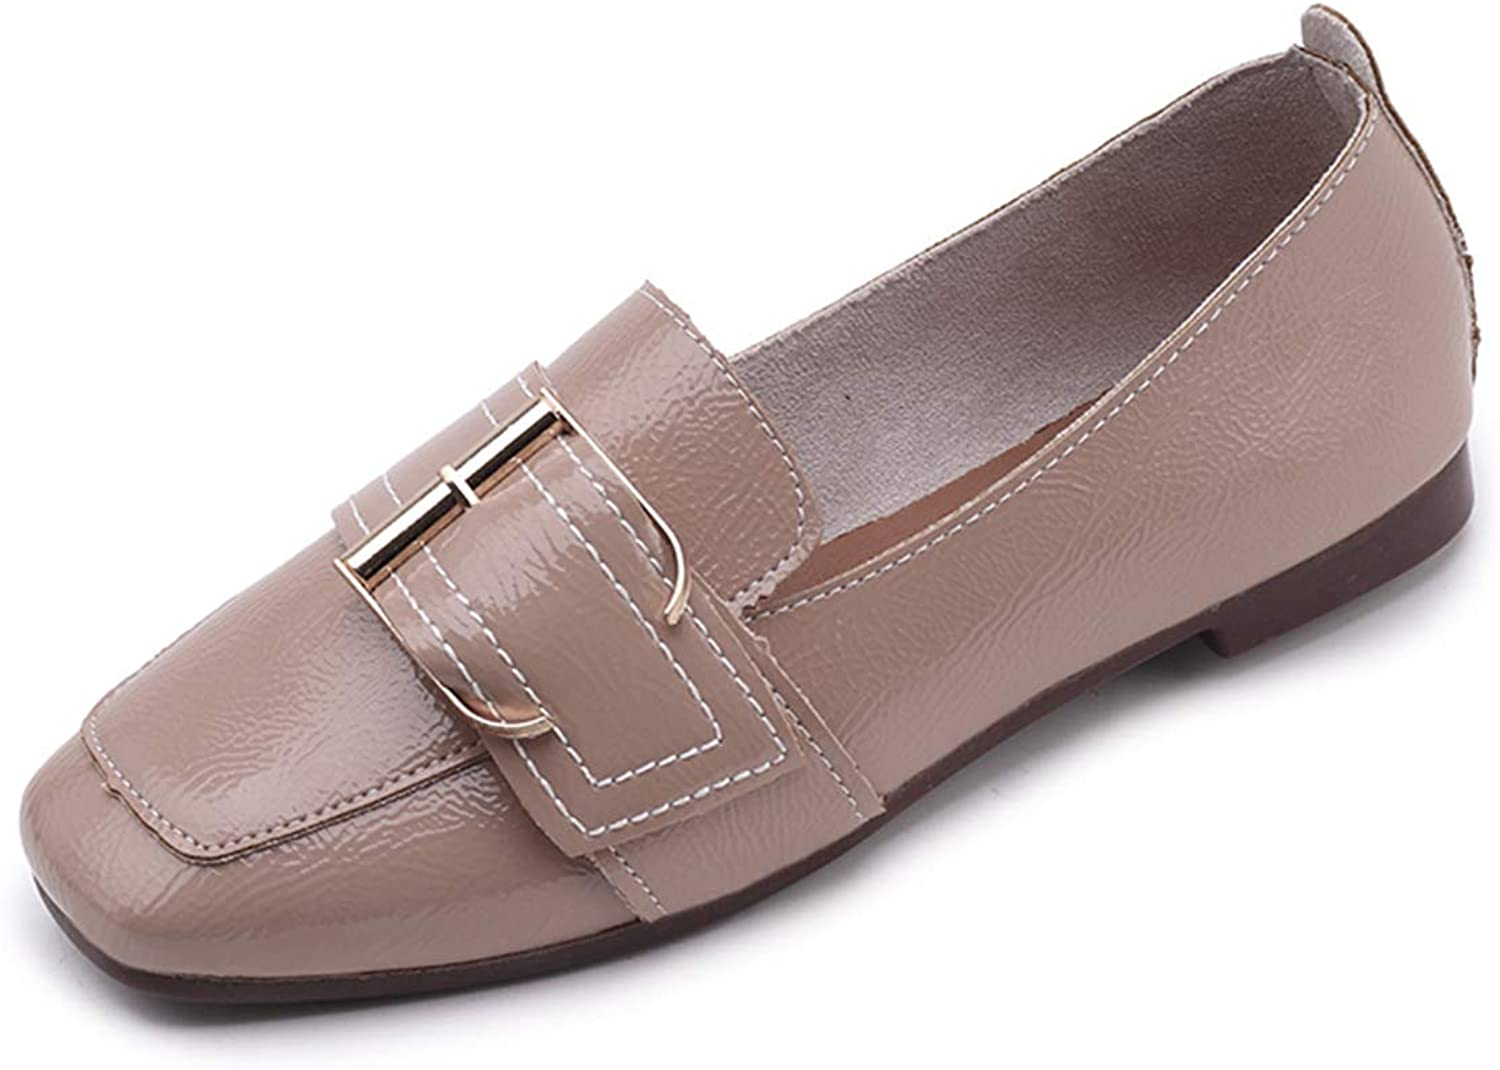 Owen Moll Women Flats, Casual Square Toe Slip-on Patent Leather Buckle Loafers shoes